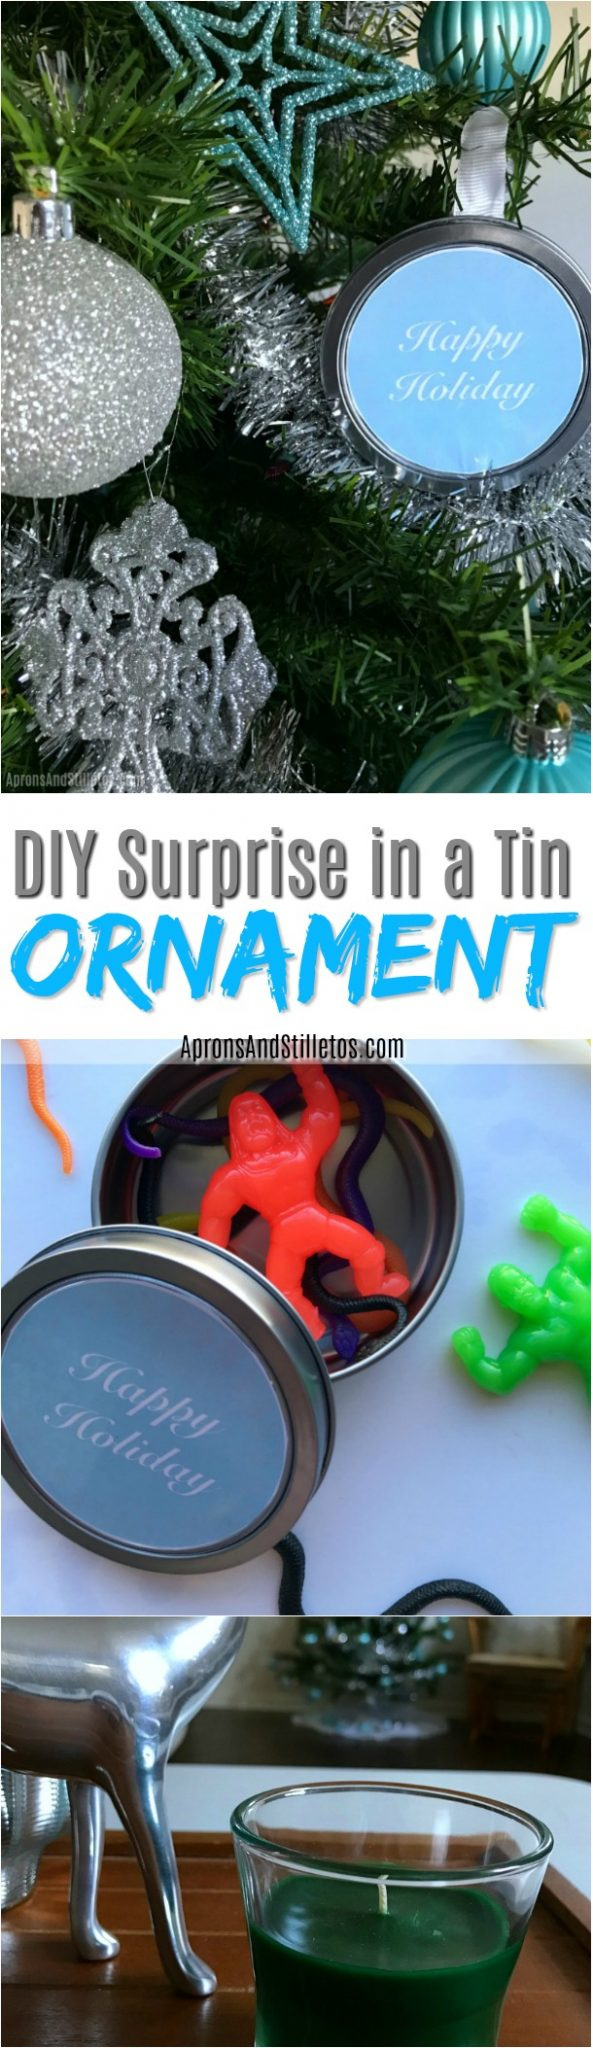 DIY Surprise in a Tin Ornament